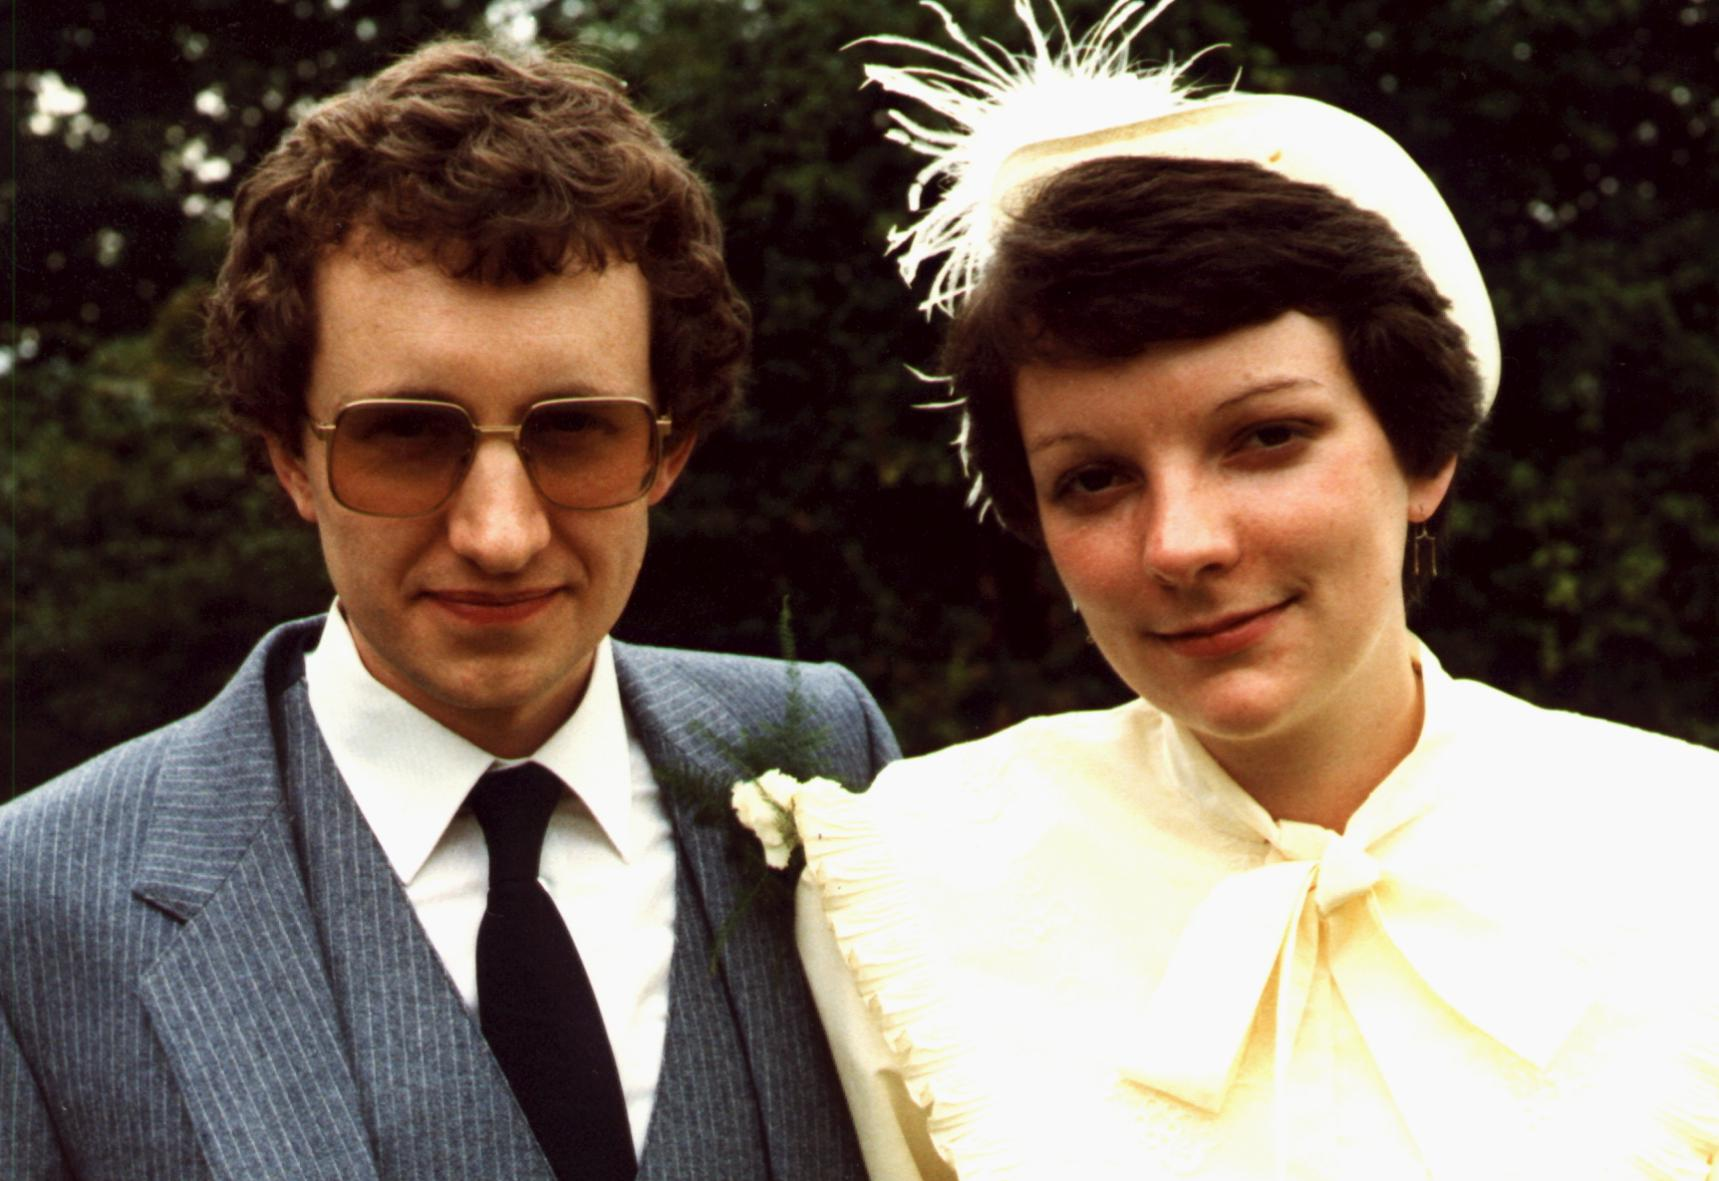 Roy and Sue Manterfield's wedding (24 July 1982)